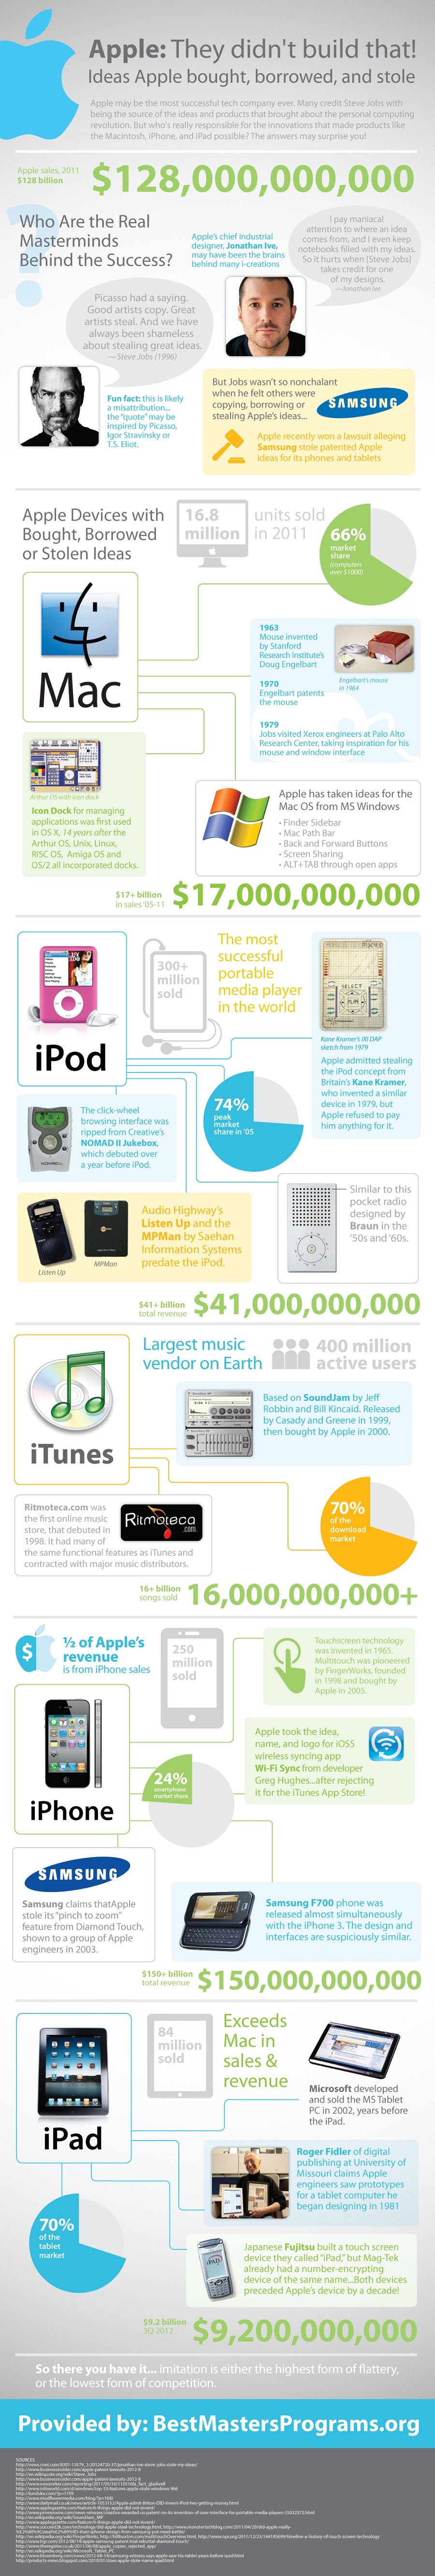 Stolen Ideas: Apple Didn't Build That [INFOGRAPHIC]